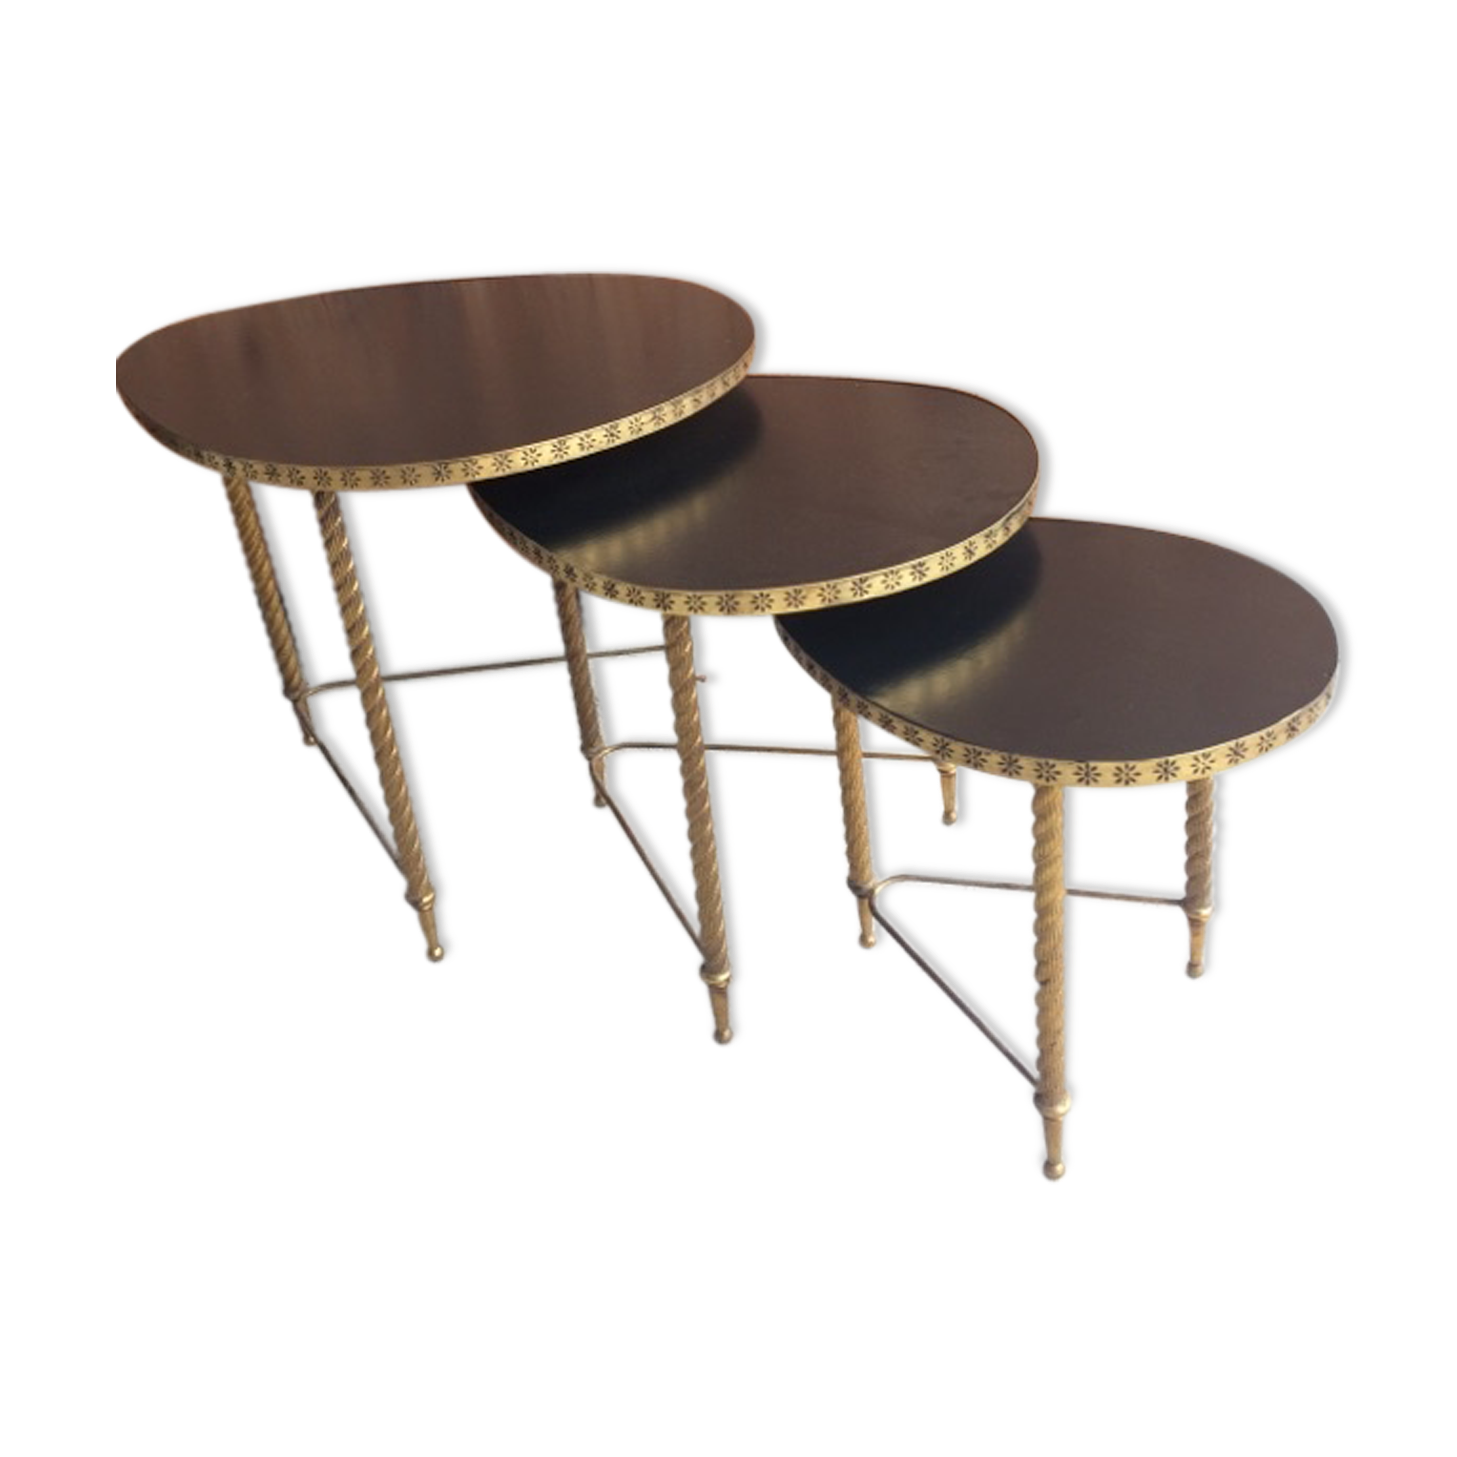 tables gigognes bois table gigogne en bois set de tables gigognes en bois massif madagascar. Black Bedroom Furniture Sets. Home Design Ideas